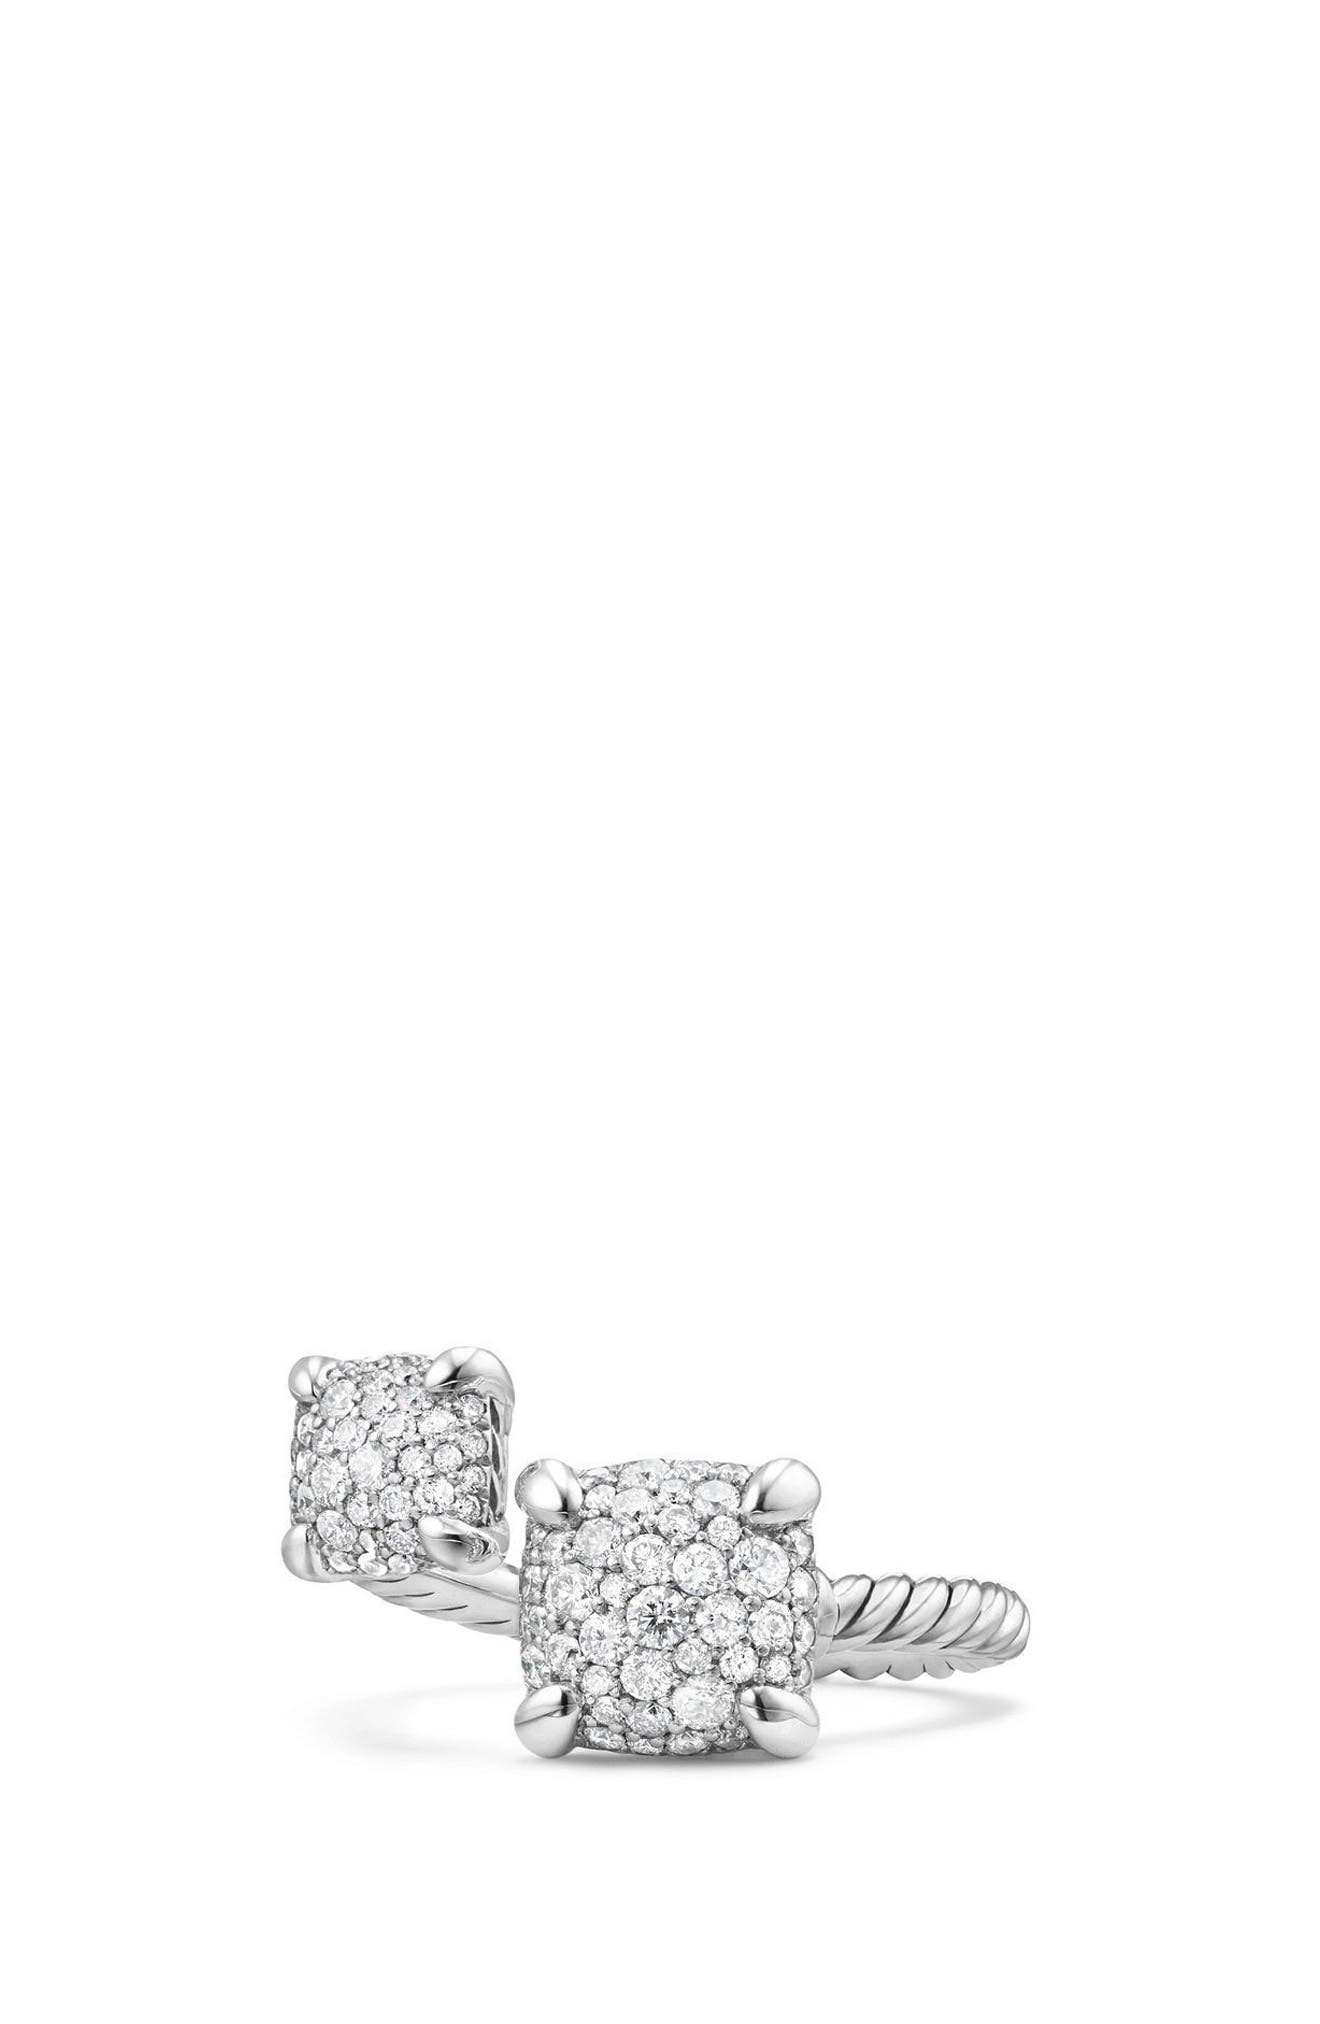 David Yurman Chatelaine Bypass Ring with Diamonds